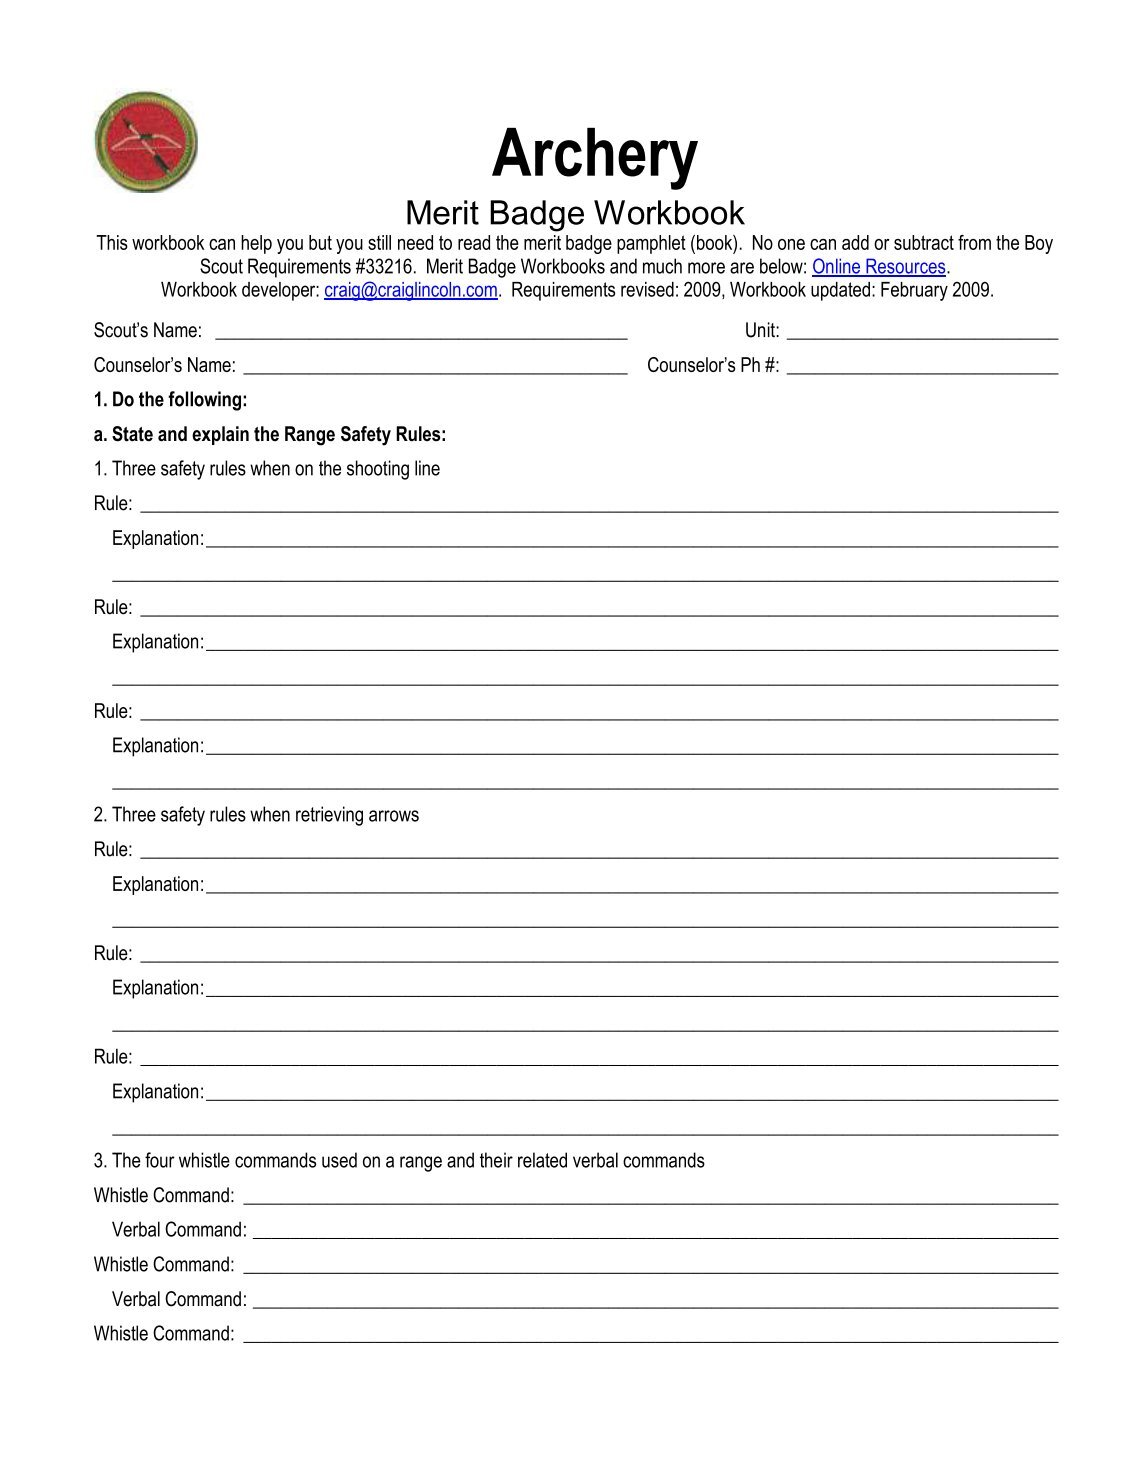 american heritage merit badge worksheet Termolak – Space Exploration Merit Badge Worksheet